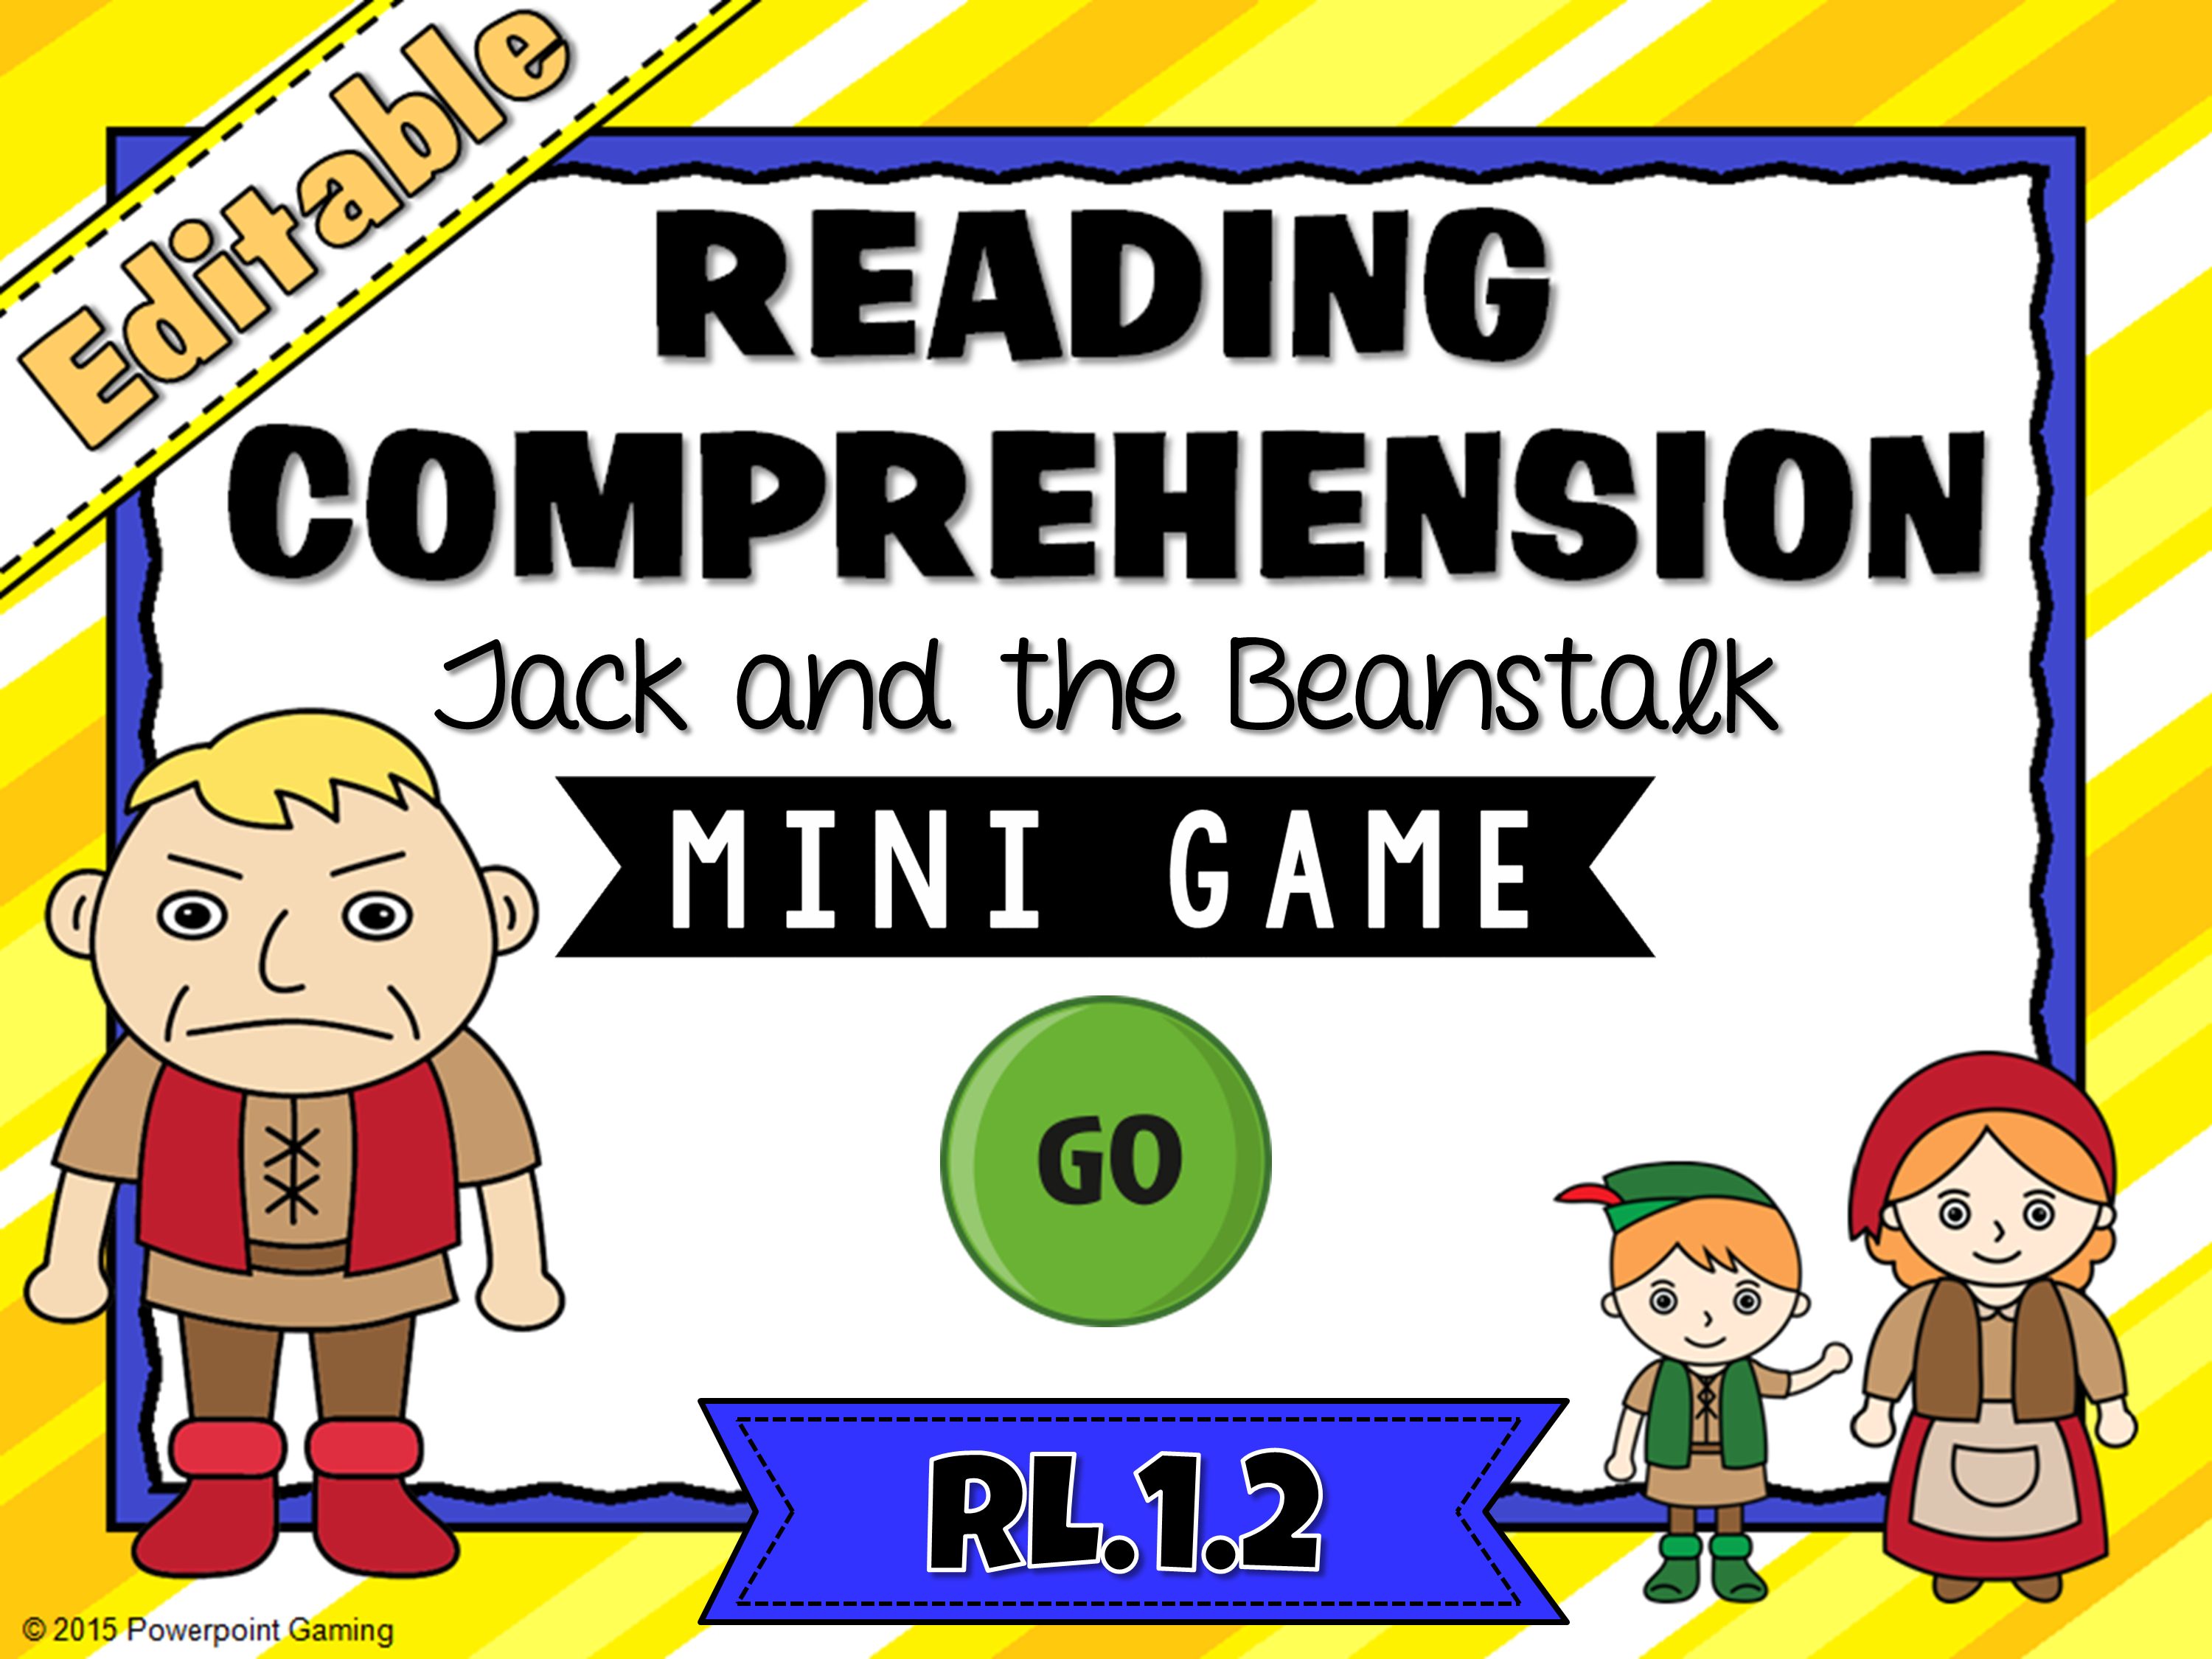 Reading Comprehension - Jack and the Beanstalk Mini Game